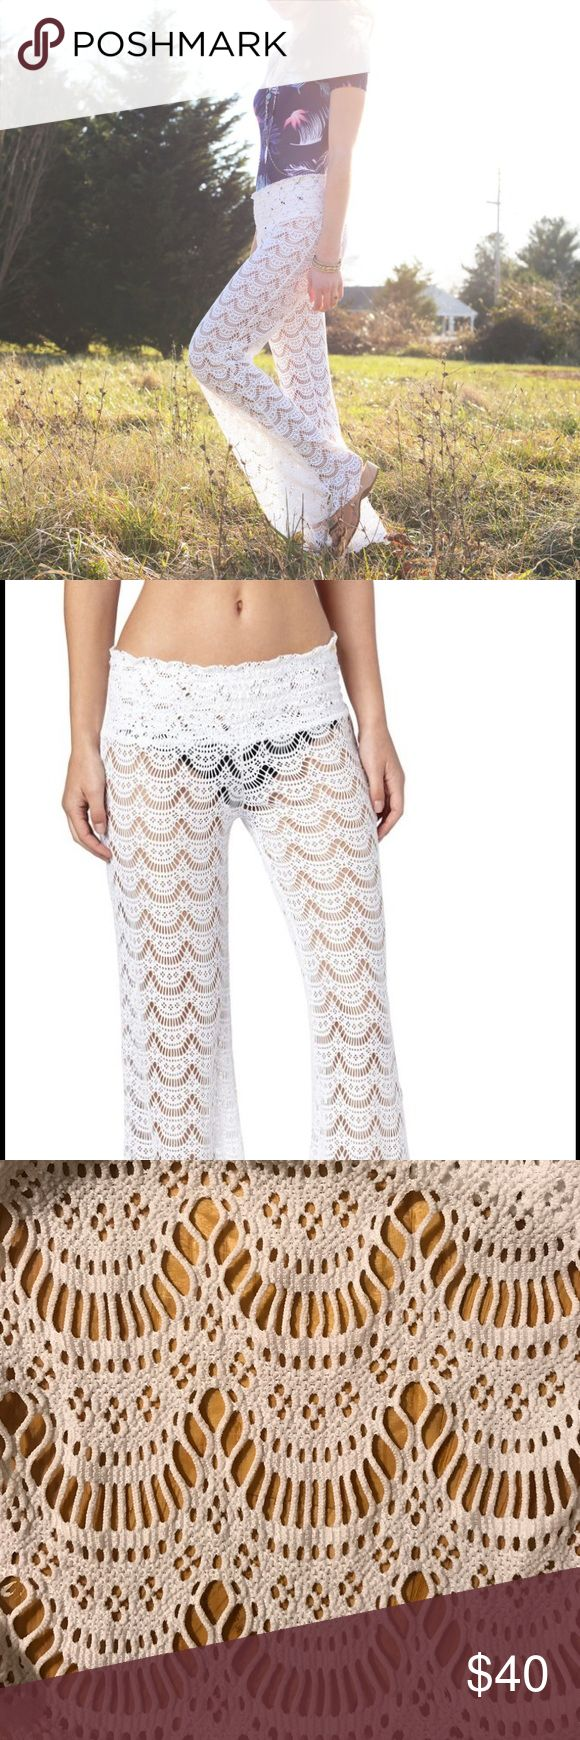 Roxy Gypsy Moon Crochet beach pants in white Roxy Gypsy Moon Crochet beach pants in white. Elastic waist band. Completely see through to be worn as a beach cover up. Beautiful fabric is stretchy and flared at bottom. Perfect for a Bachelorette party, summertime fun or festival outfit. Roxy Swim Coverups